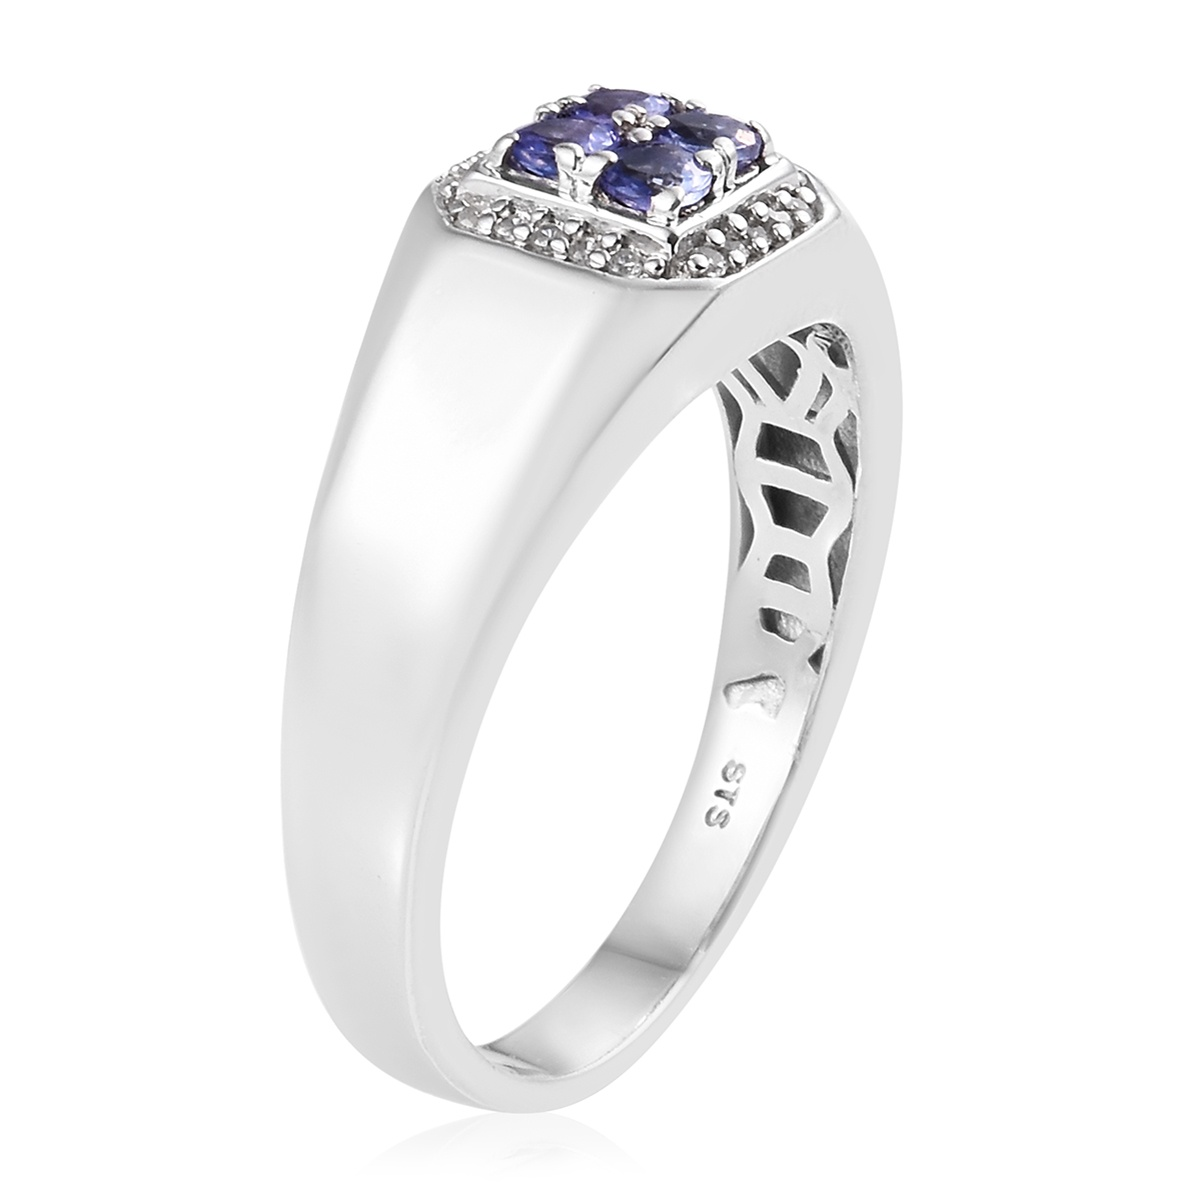 Tanzanite, Zircon Men's Ring in Platinum Over Sterling Silver (Size 13.0) 0.82 ctw